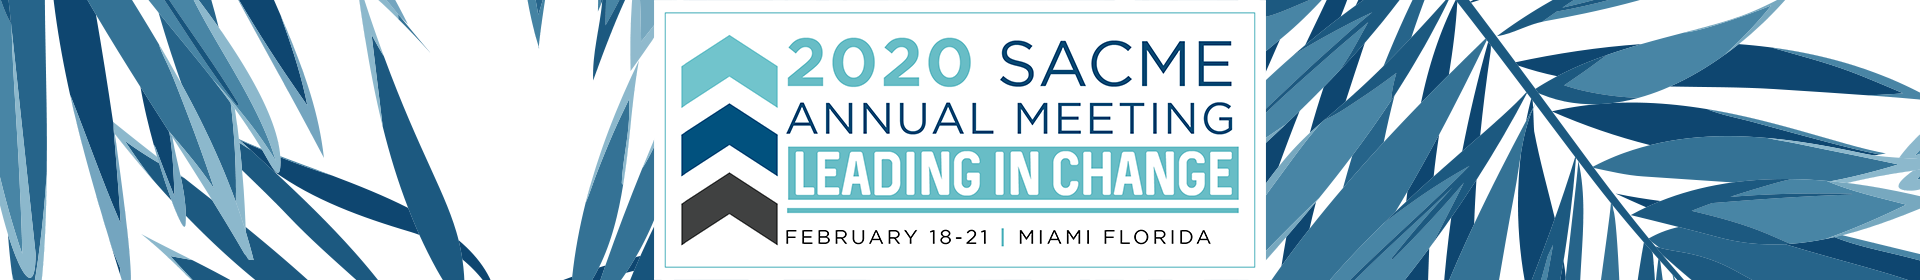 2020 SACME Annual Conference Event Banner